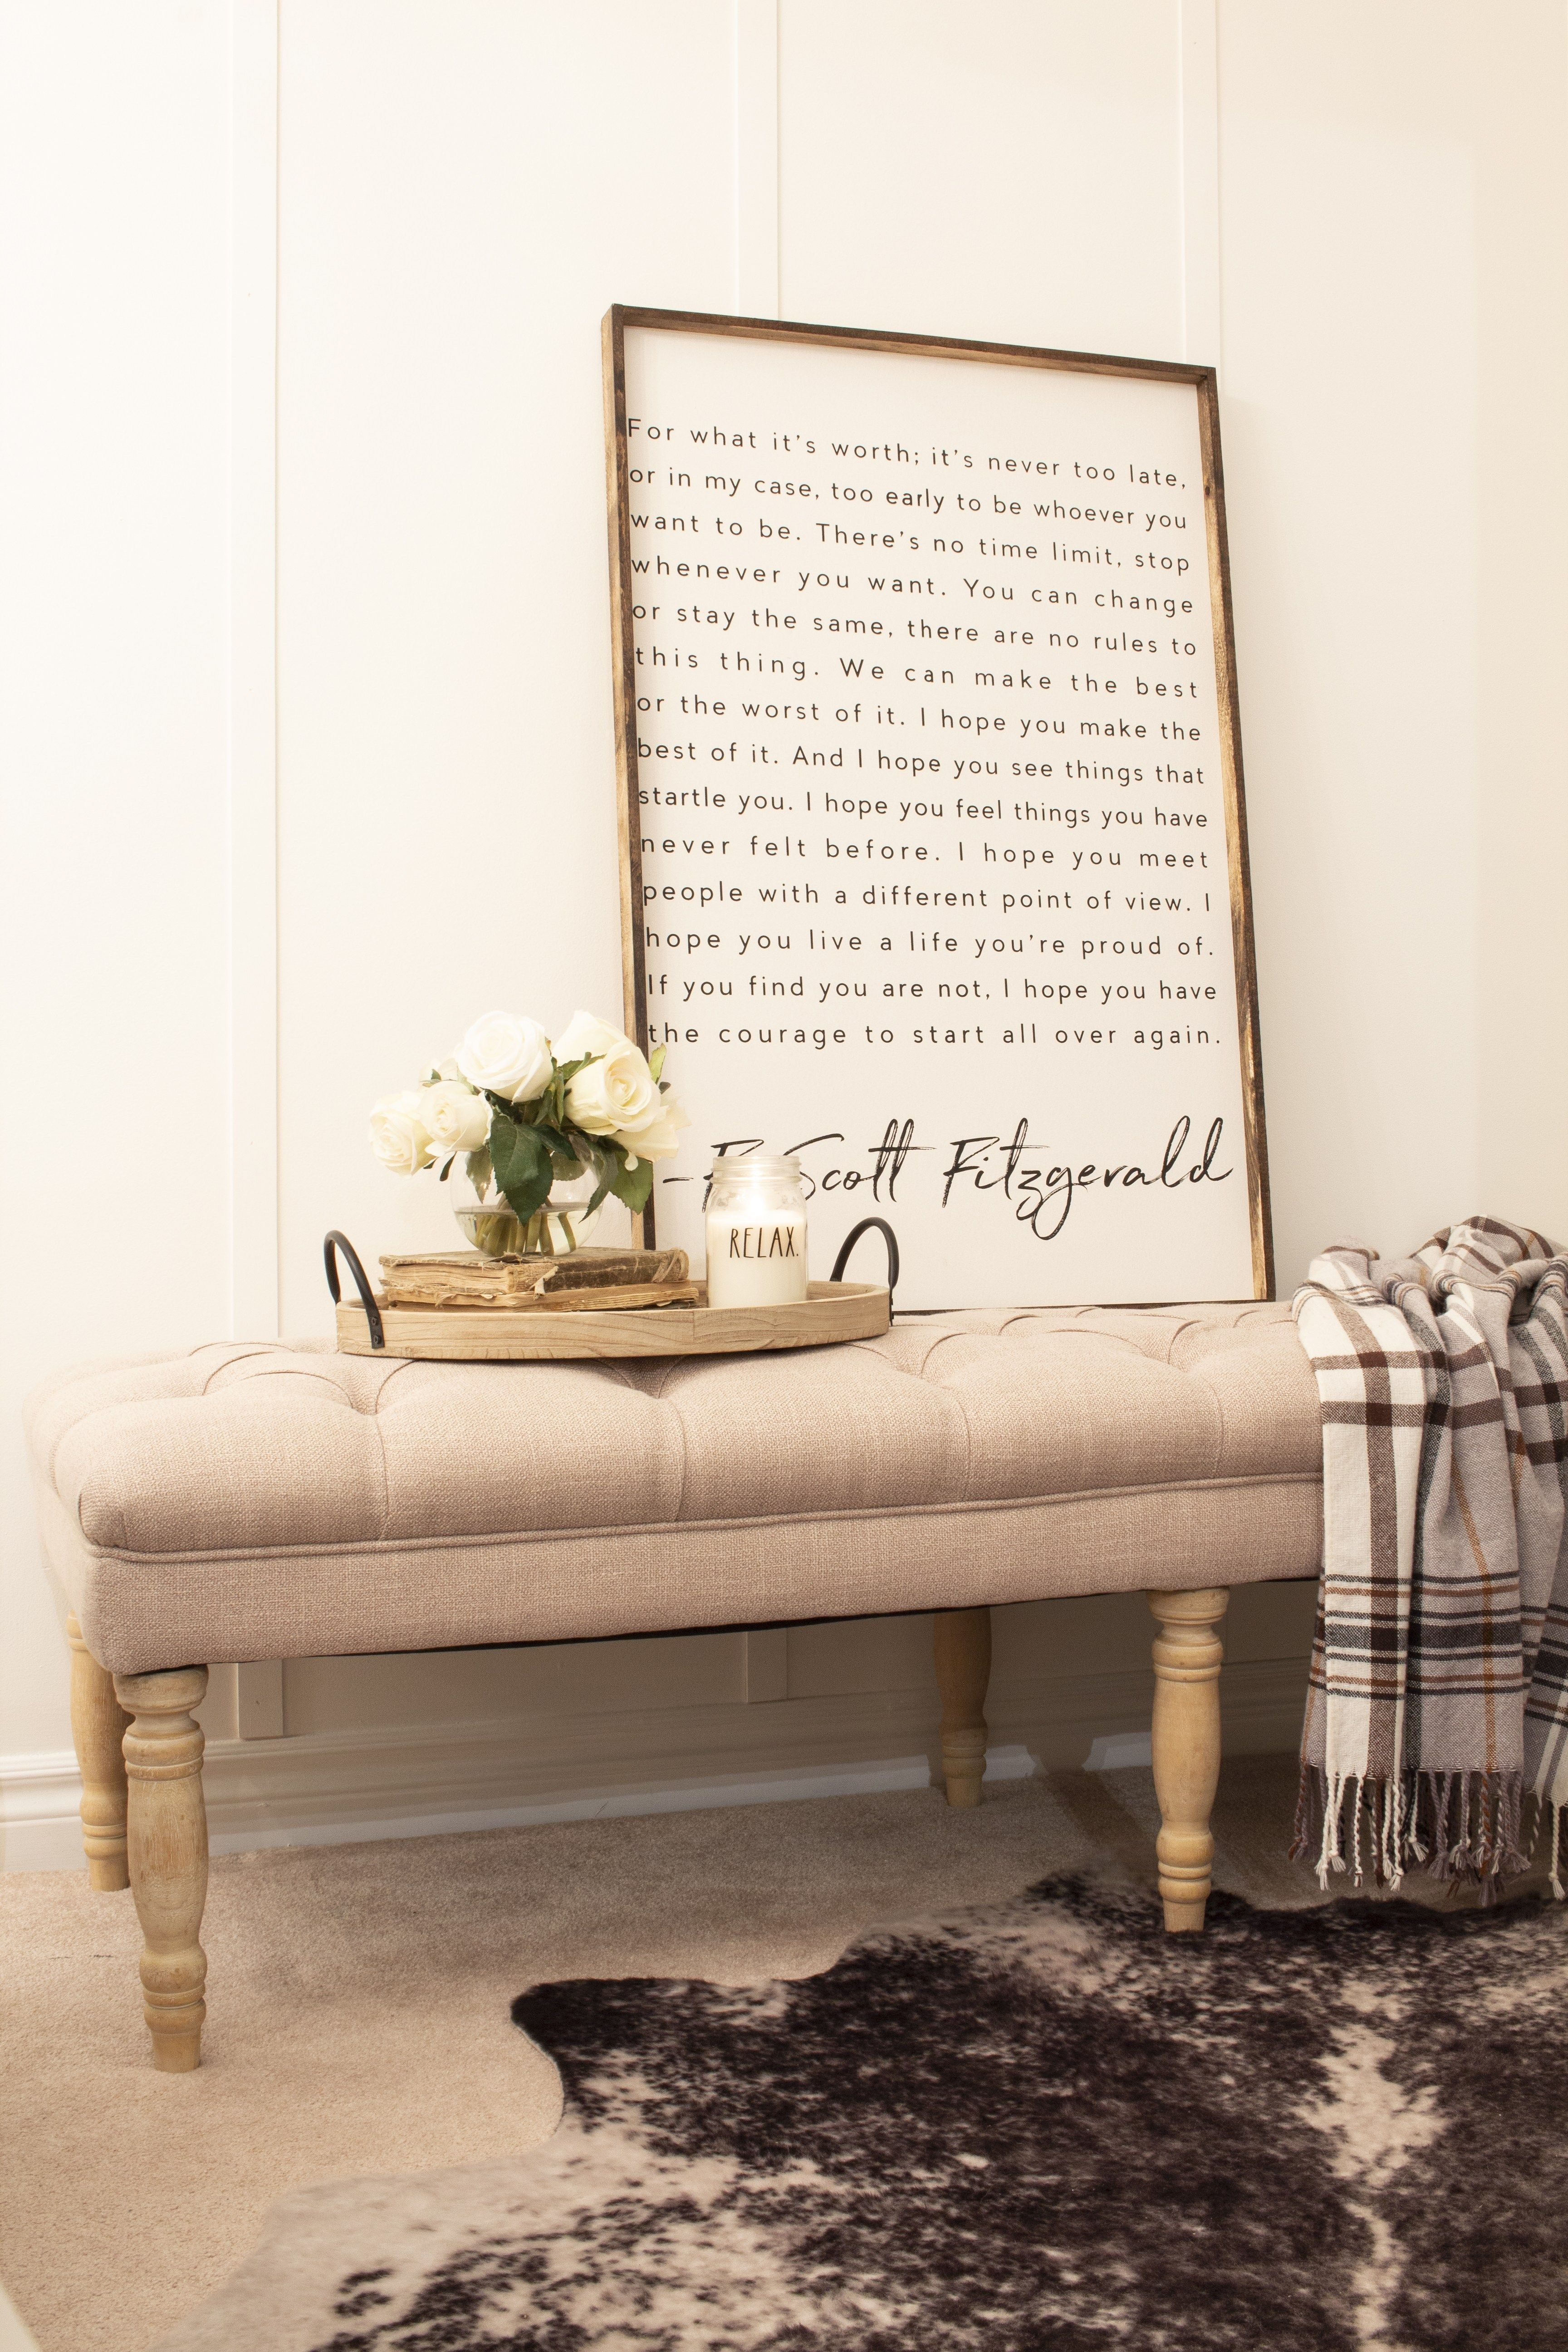 Farmhouse Style Guest Bedroom Makeover Reveal (Wk 6 of 6) images